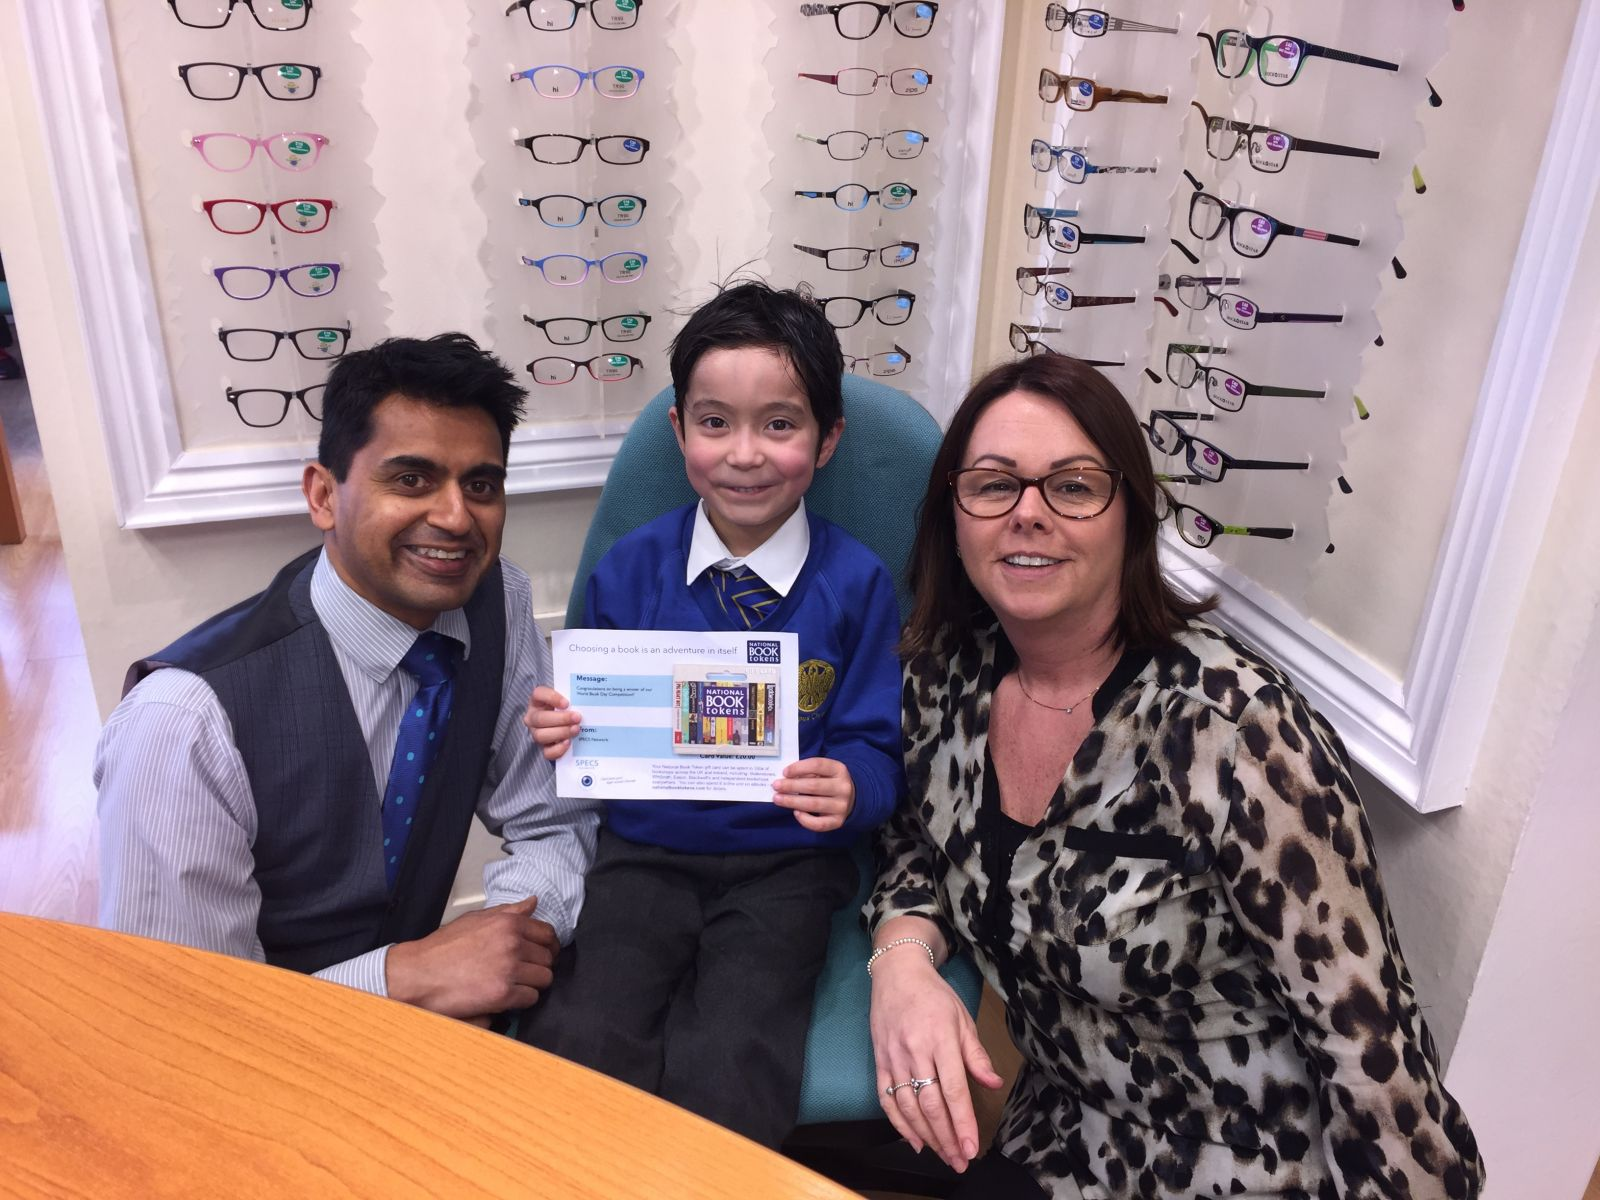 Sebastian collected his book vouchers from N K Opticians, Weston Super Mare